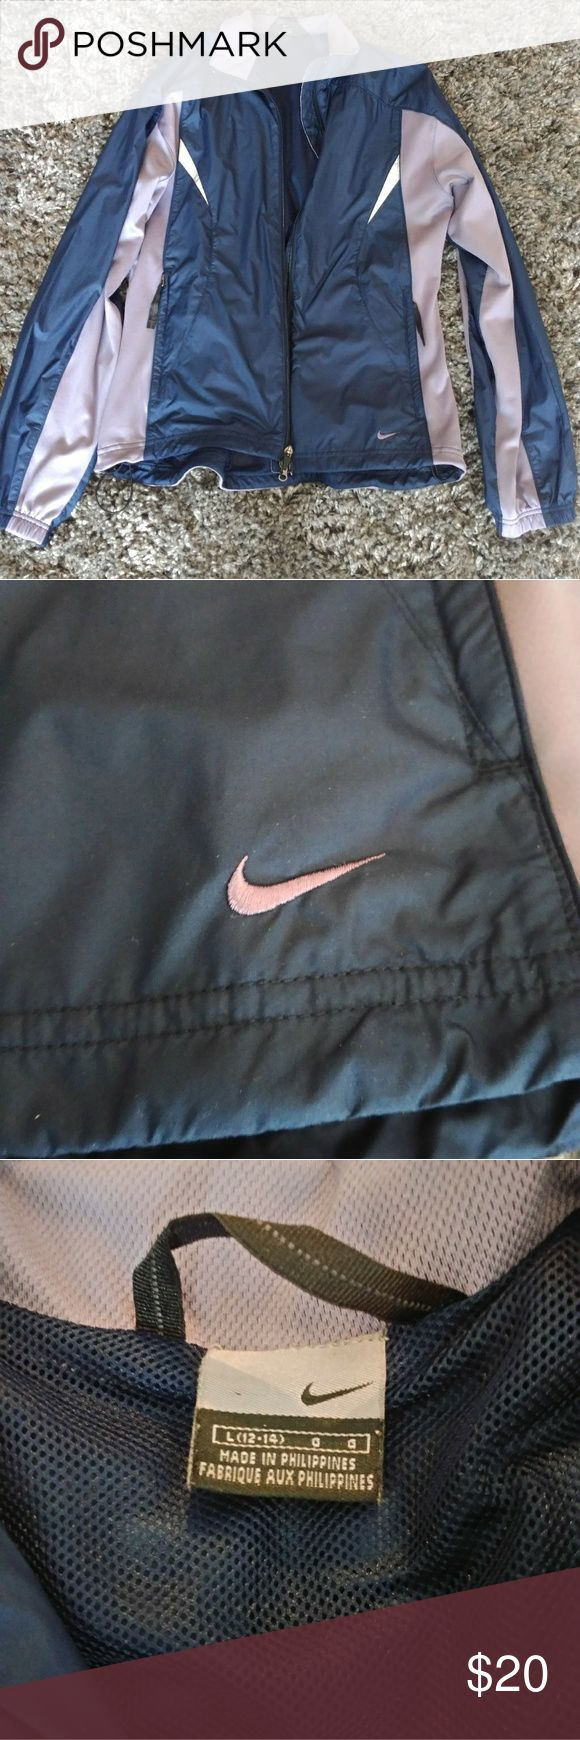 Women's Nike jacket Lavender and blue women's Nike jacket size large 12-14 in great condition flawless Nike Jackets & Coats